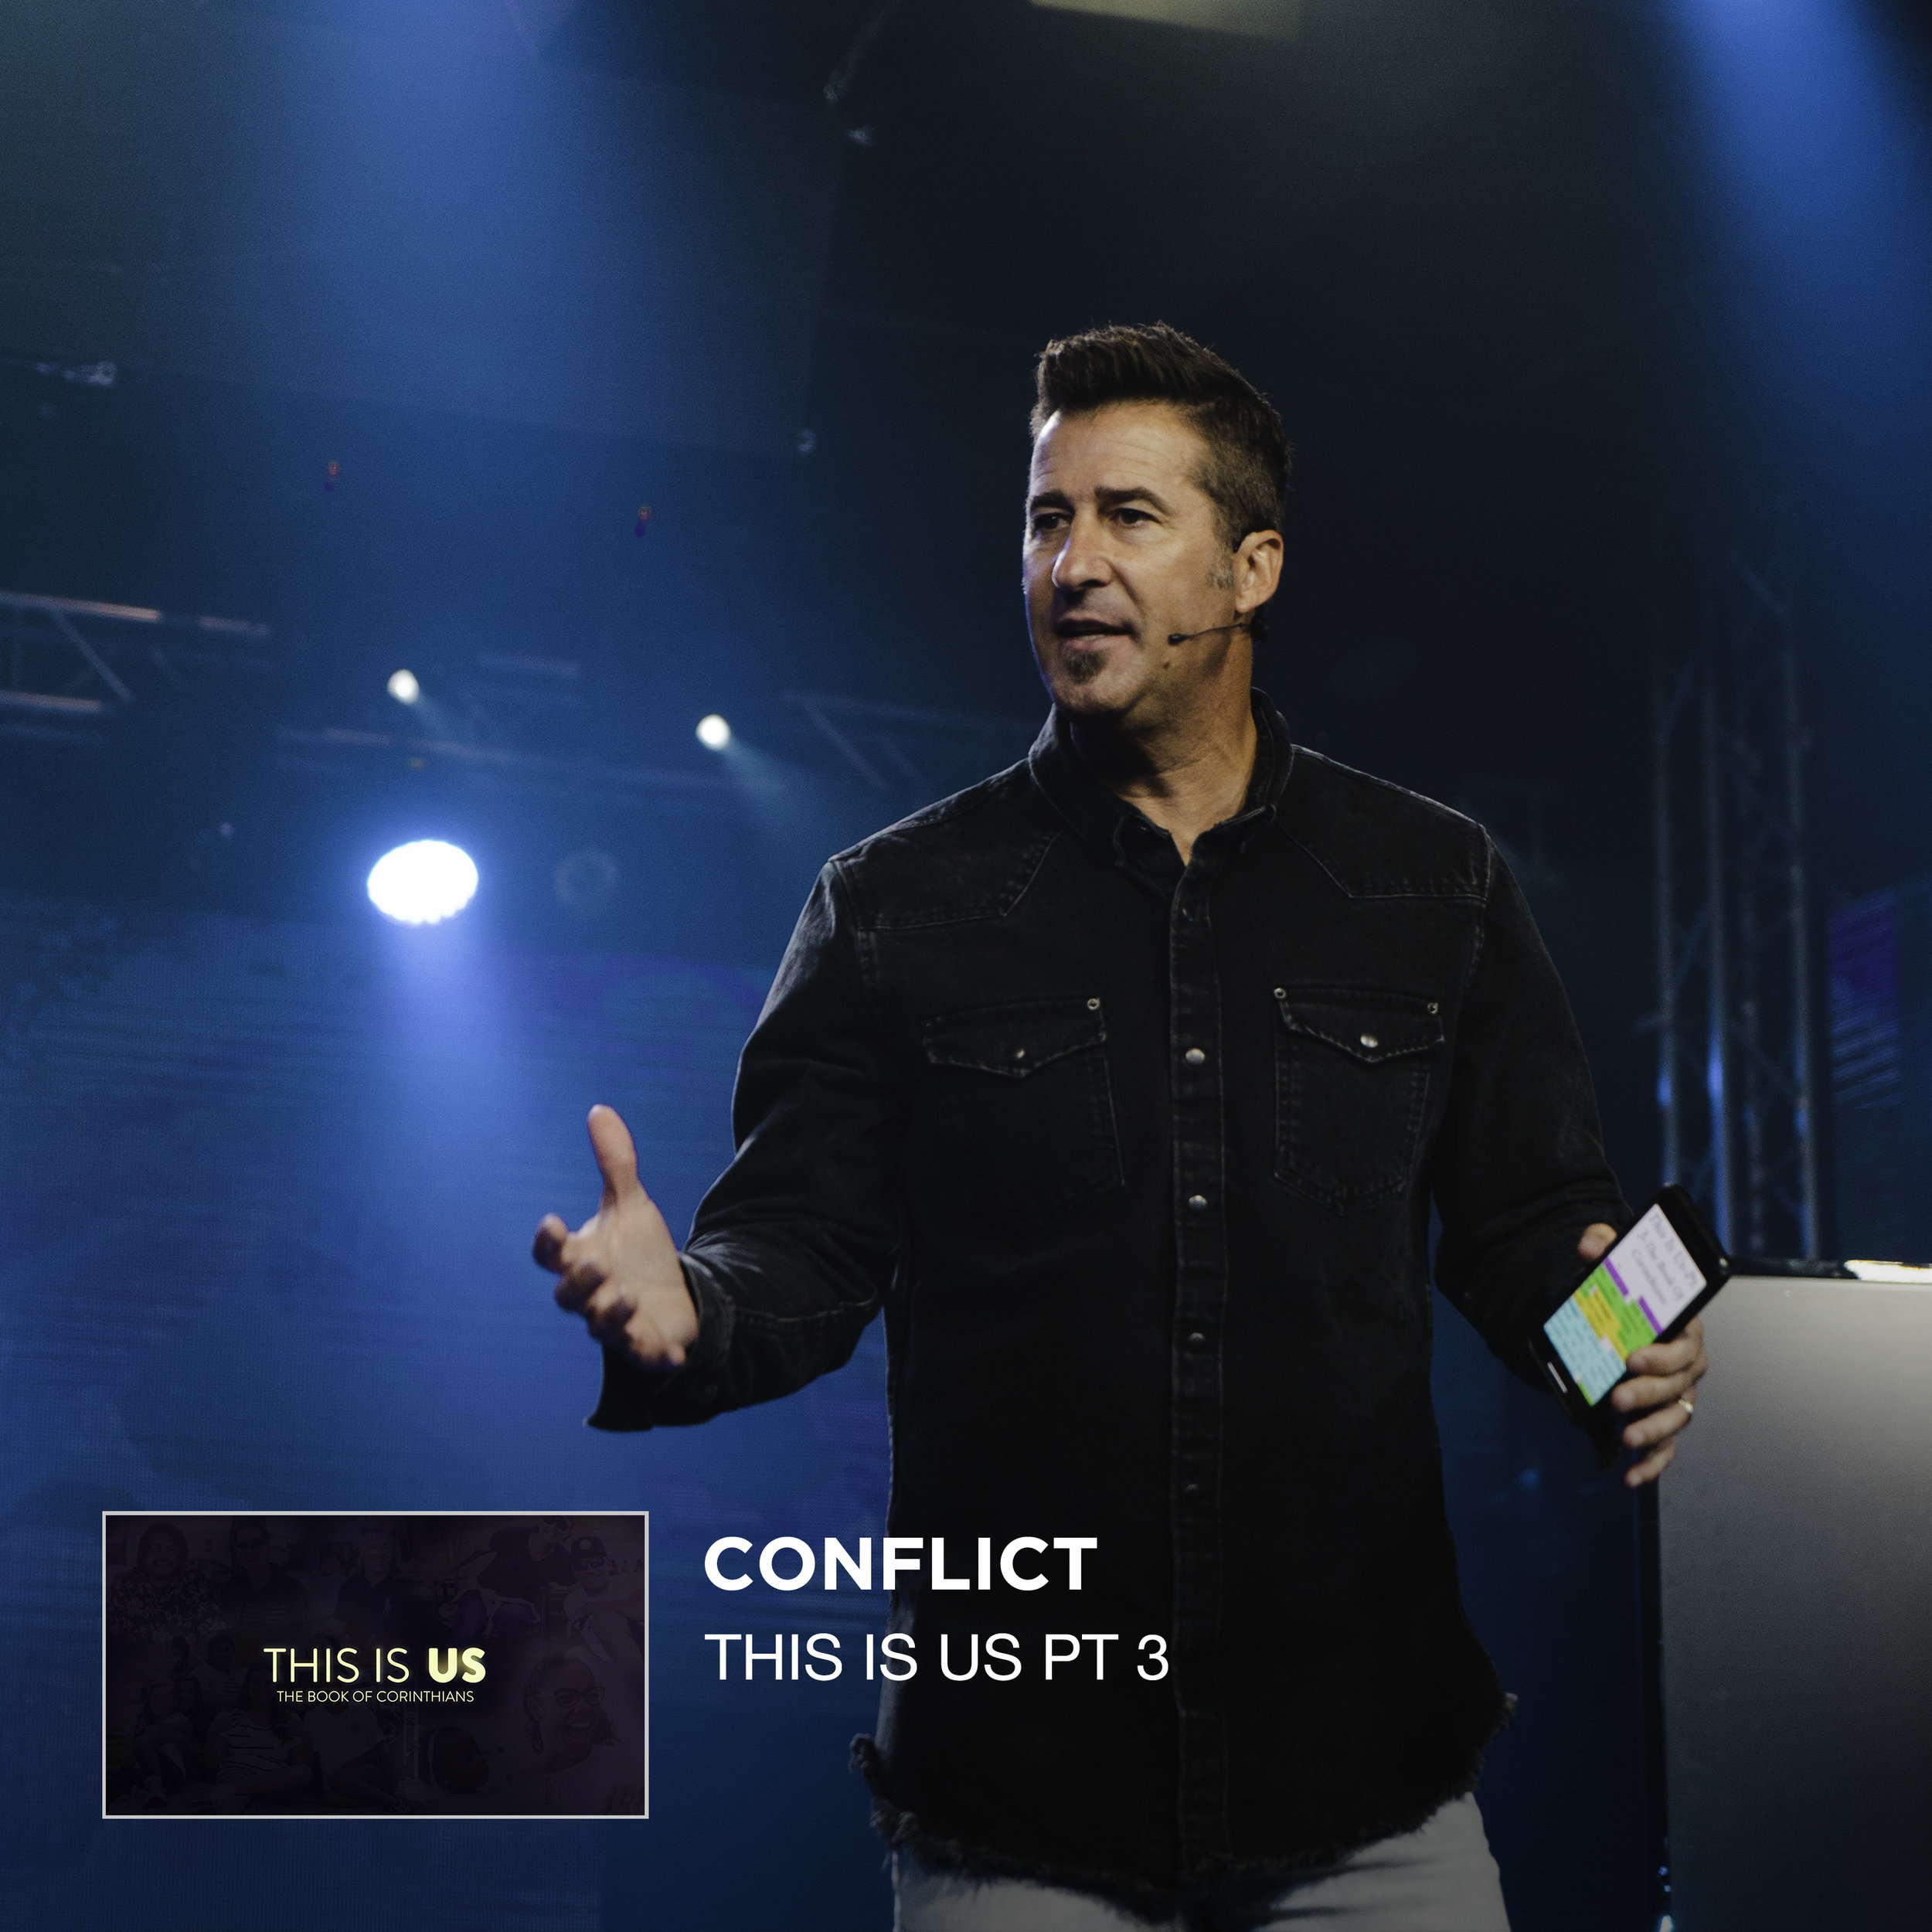 This Is Us Pt 3 - Conflict - Jared Ming Web.jpg